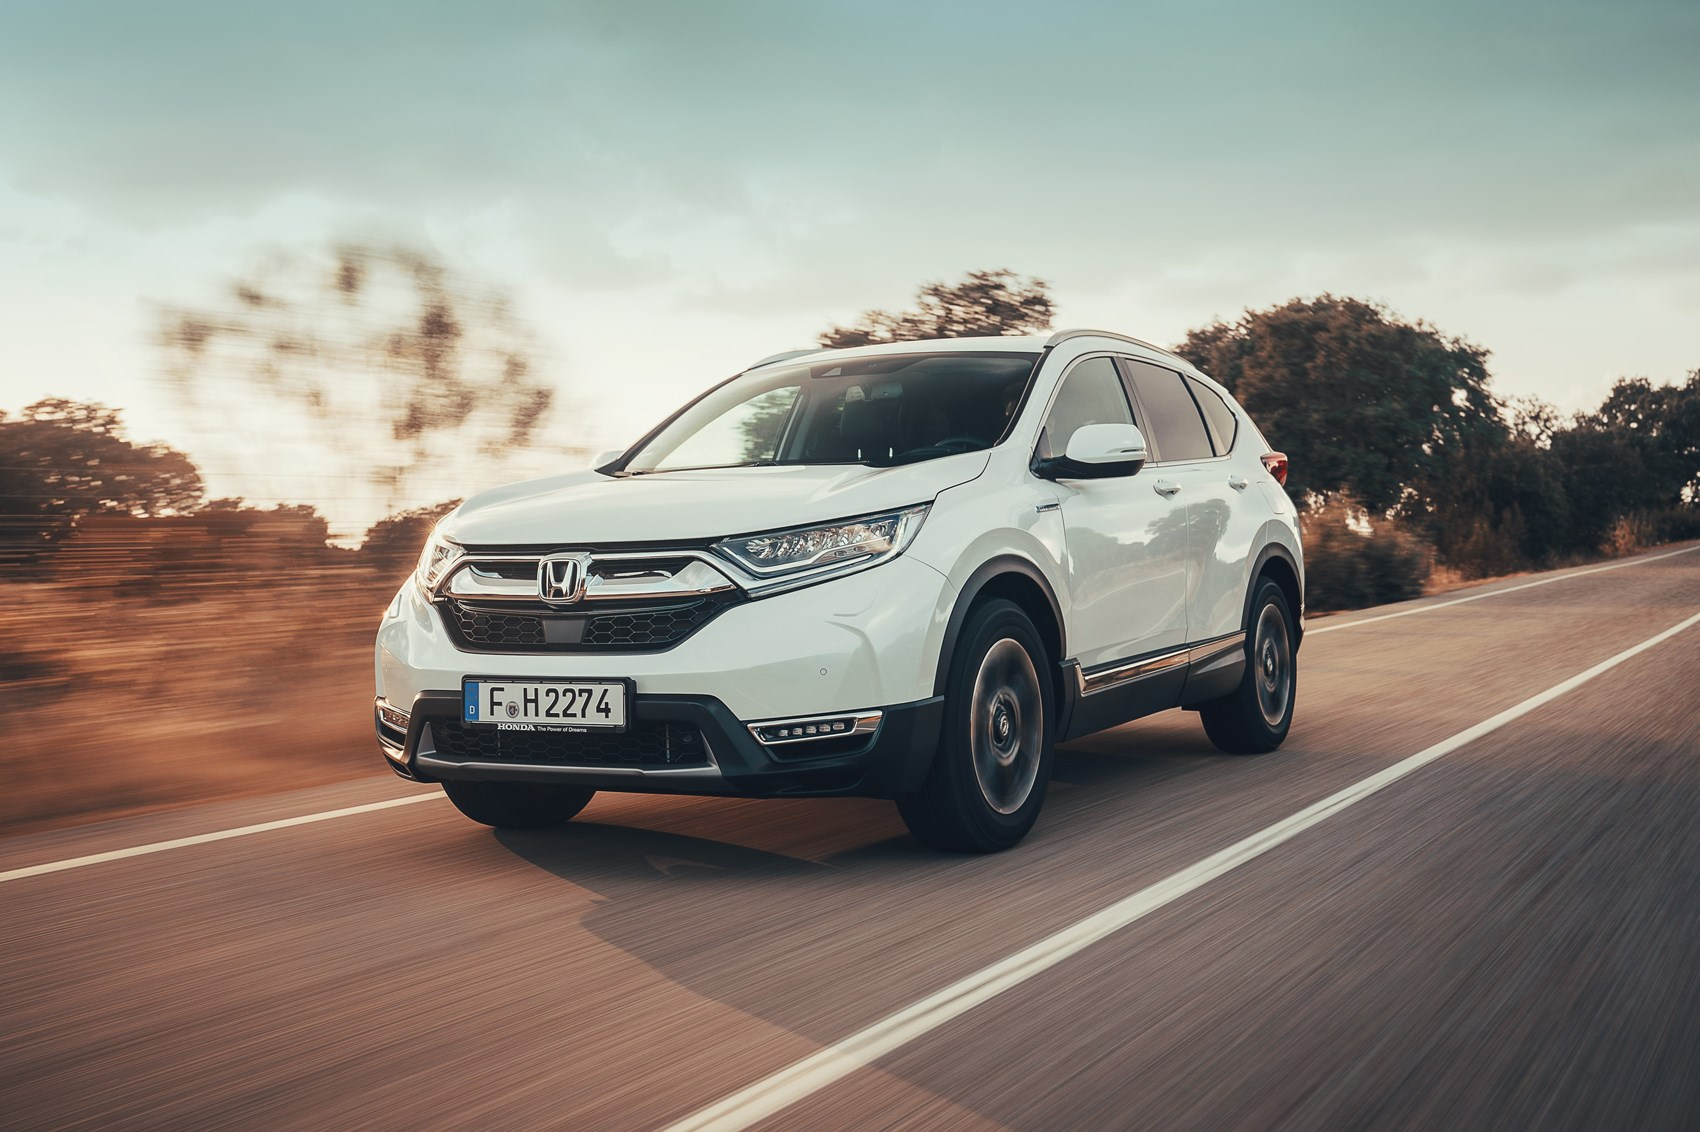 Honda CR-V Hybrid white driving